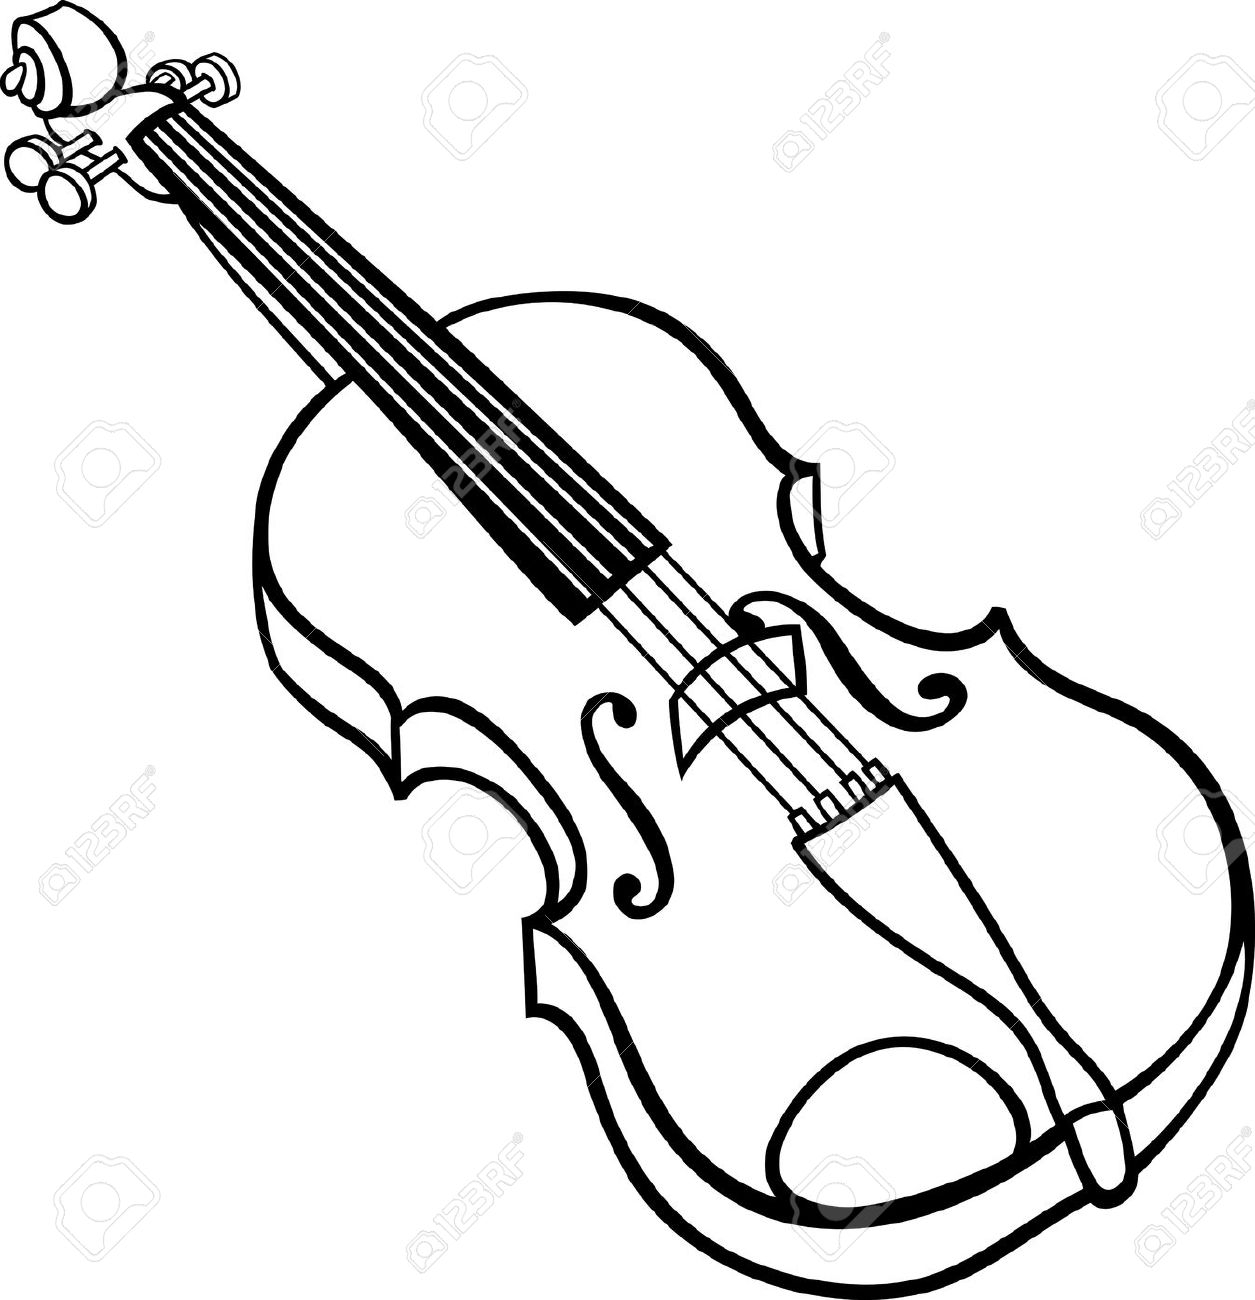 1255x1300 Musical Instruments Clipart Black And White